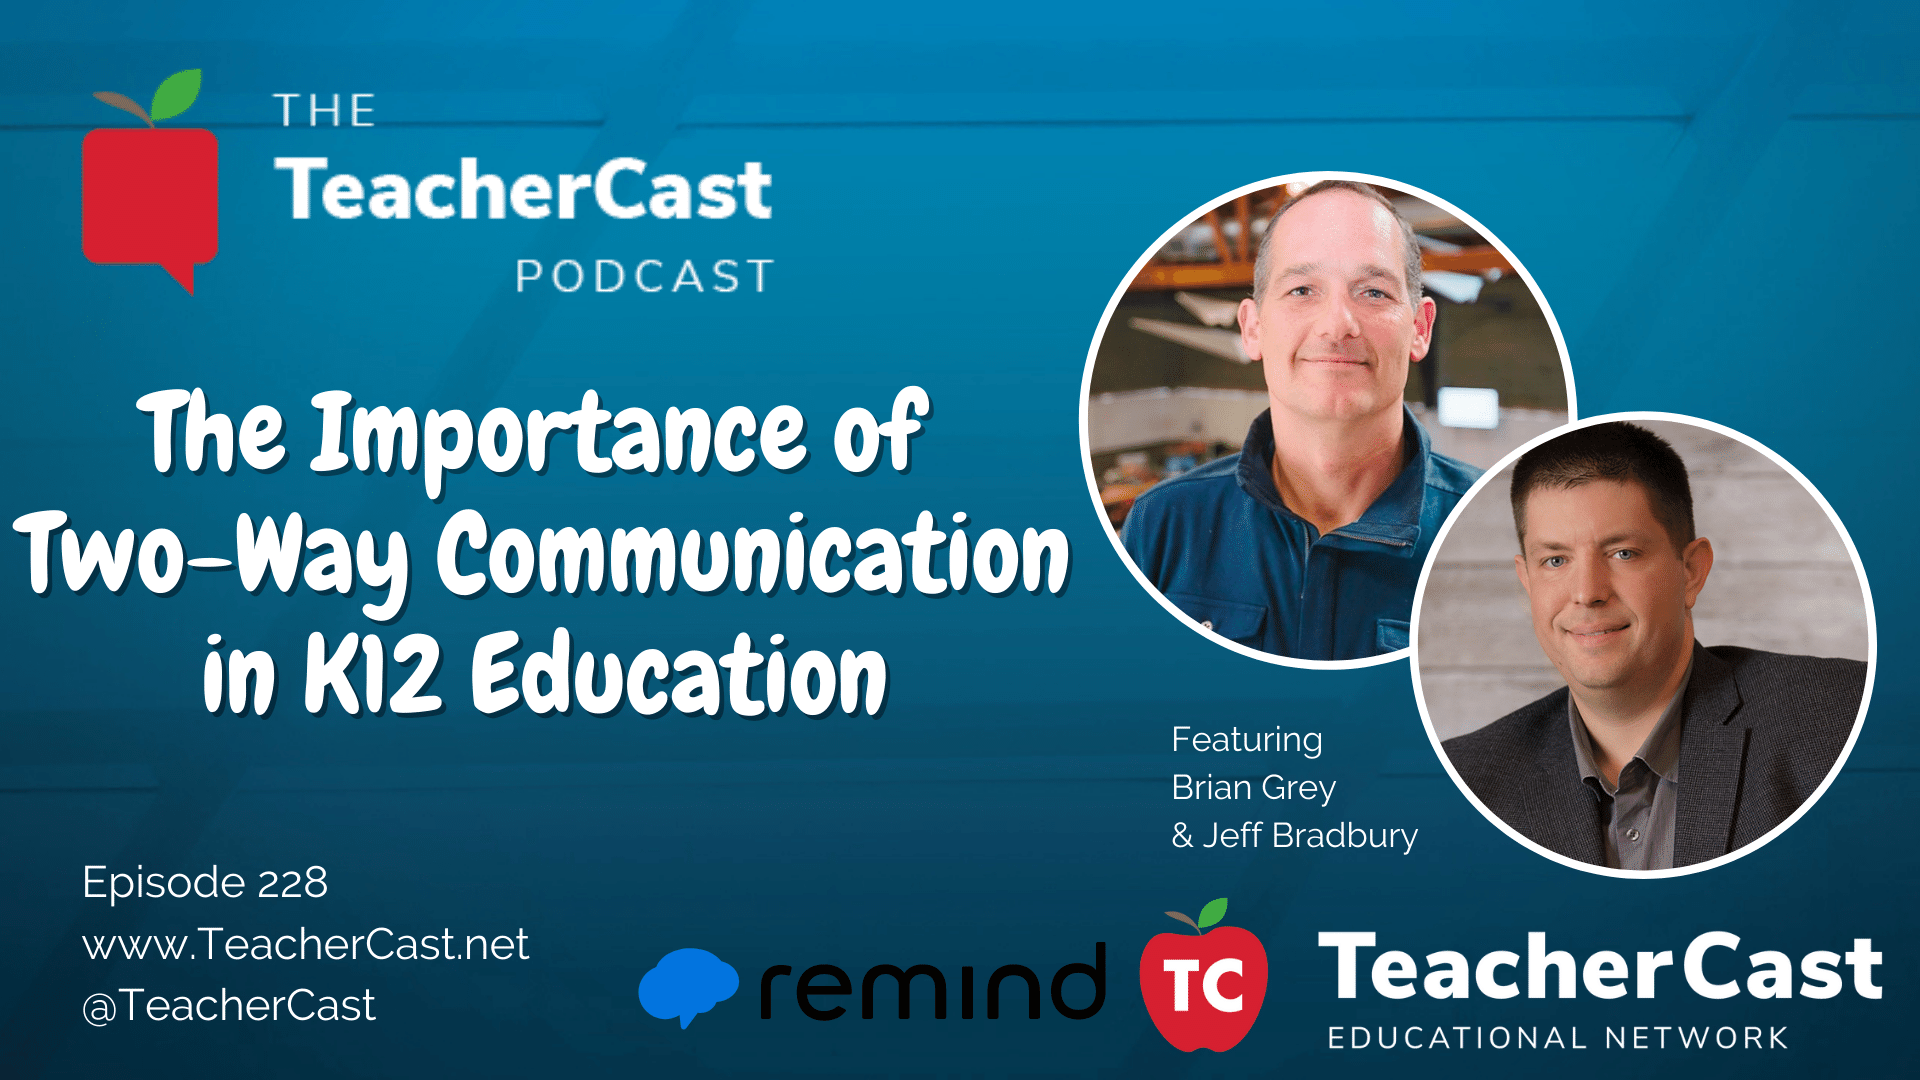 TeacherCast Podcast featuring Brian Grey from Remind